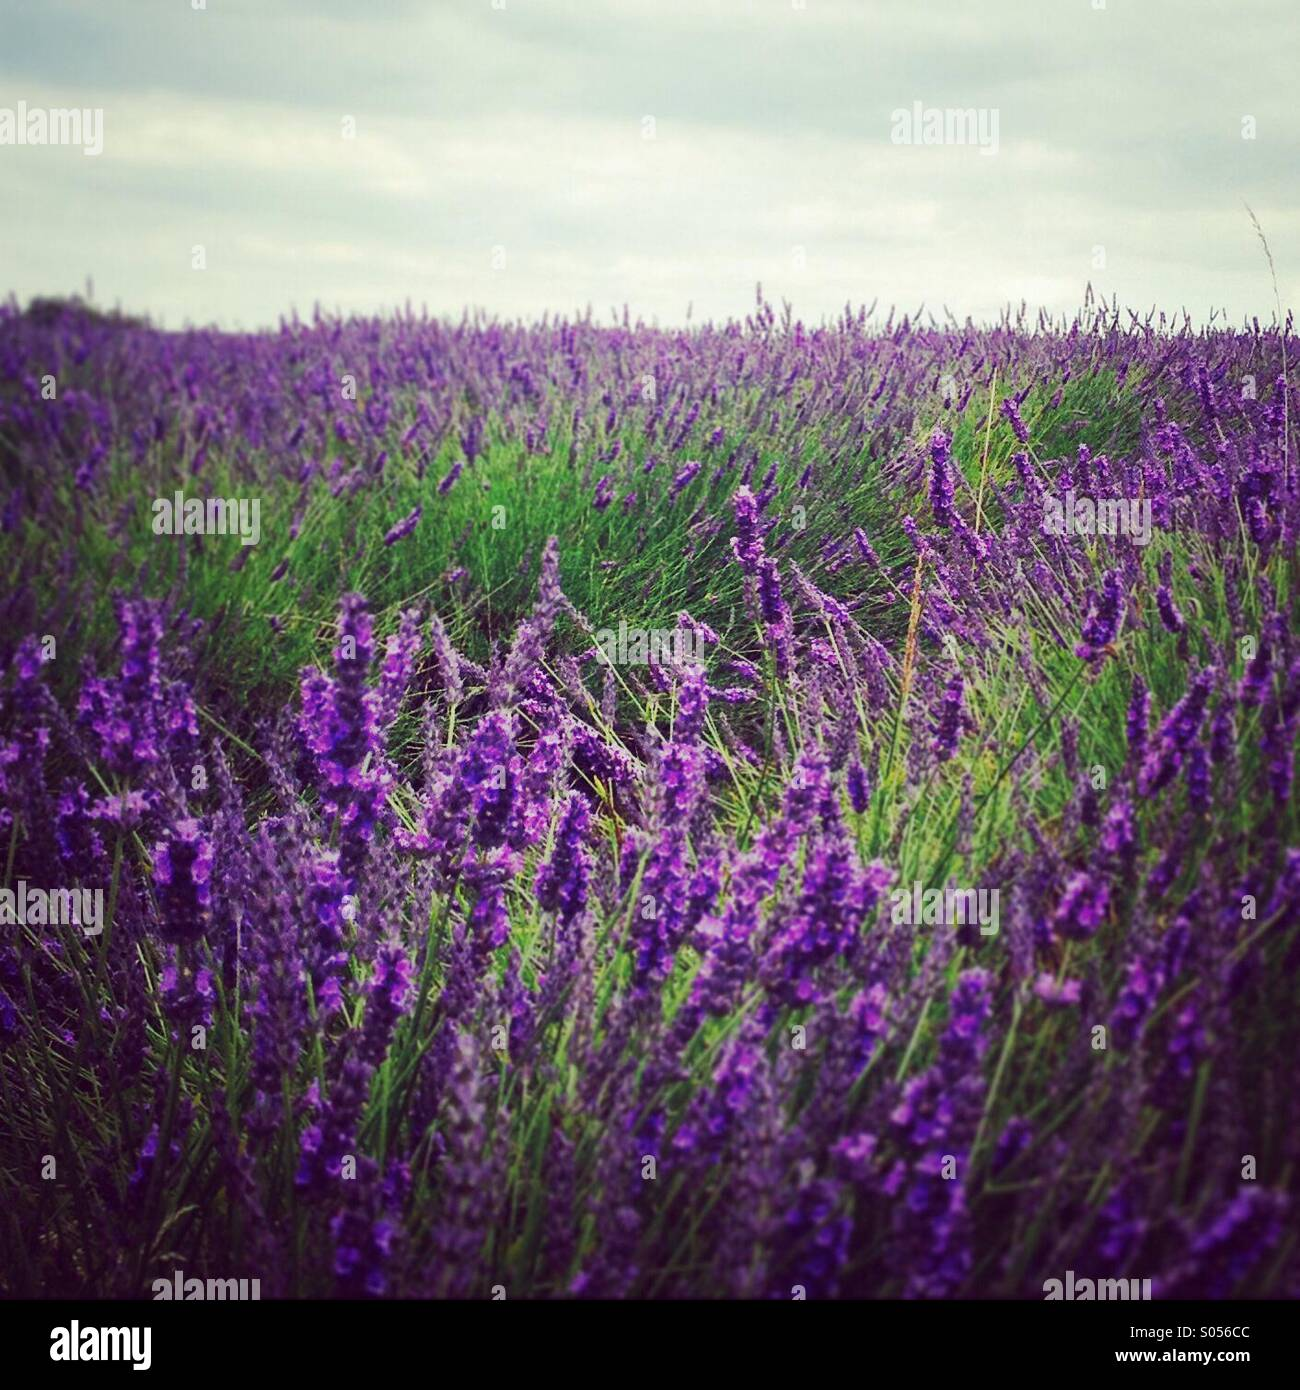 Field of lavender - Stock Image